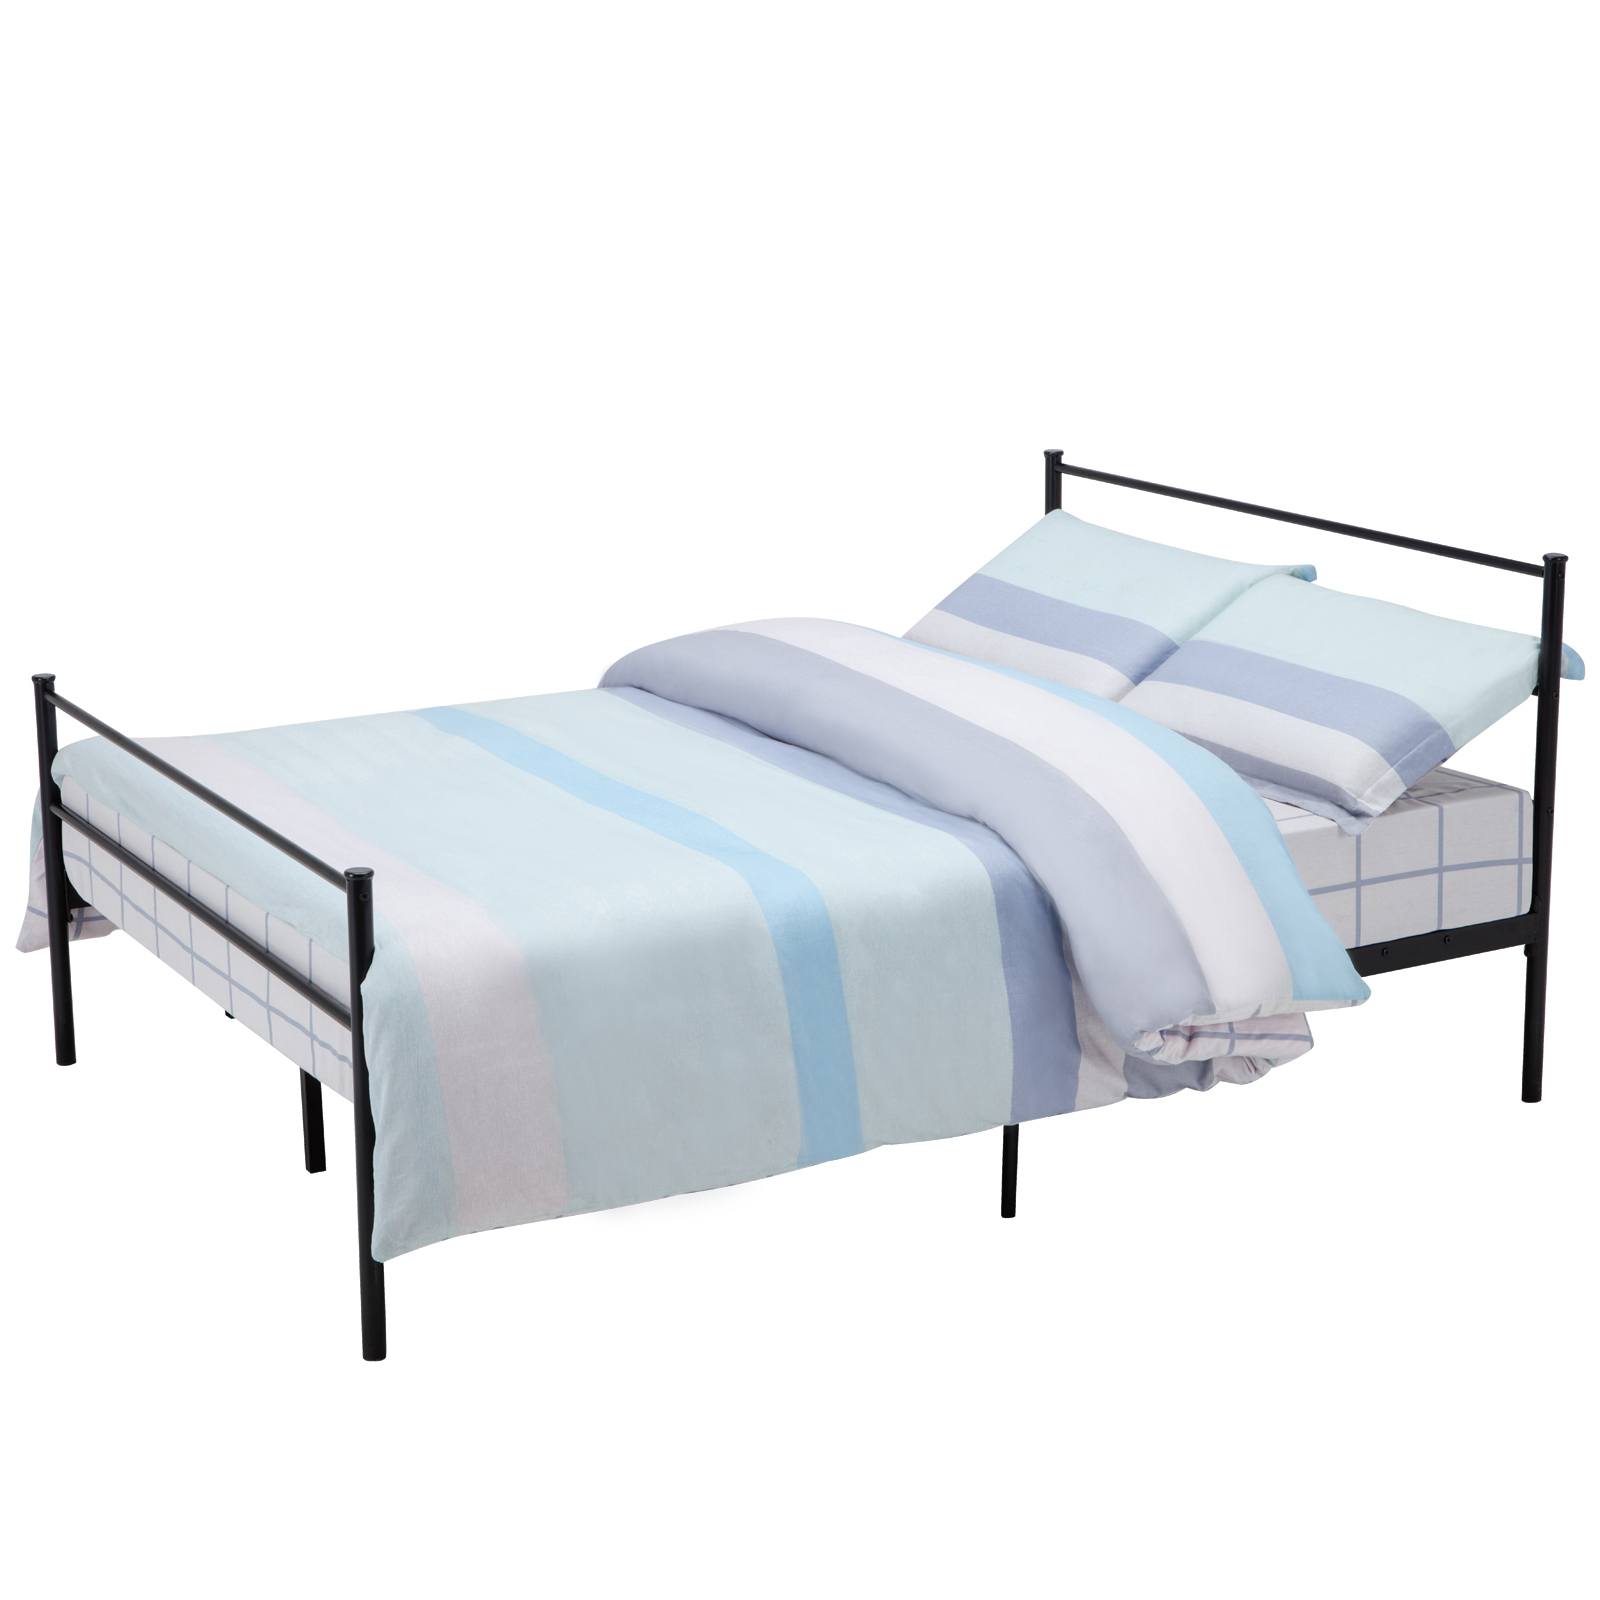 Twin Full Queen Size Metal Bed Frame Platform Headboards 6 Leg Bedroom Furniture Ebay